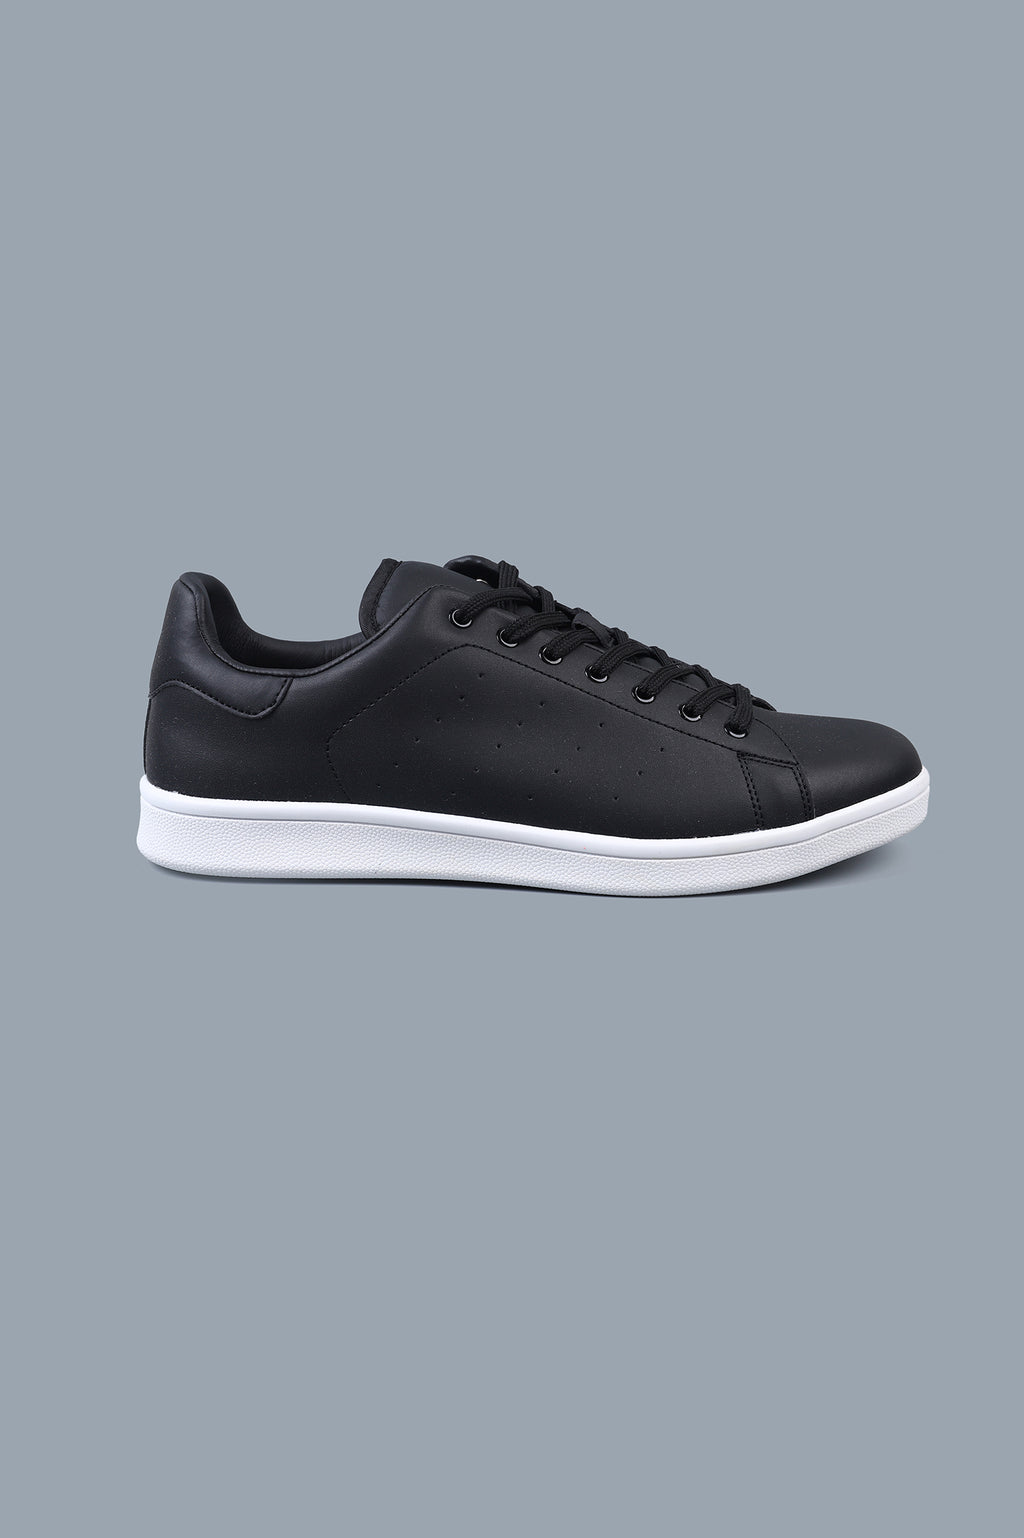 BASIC KICKS-BLACK